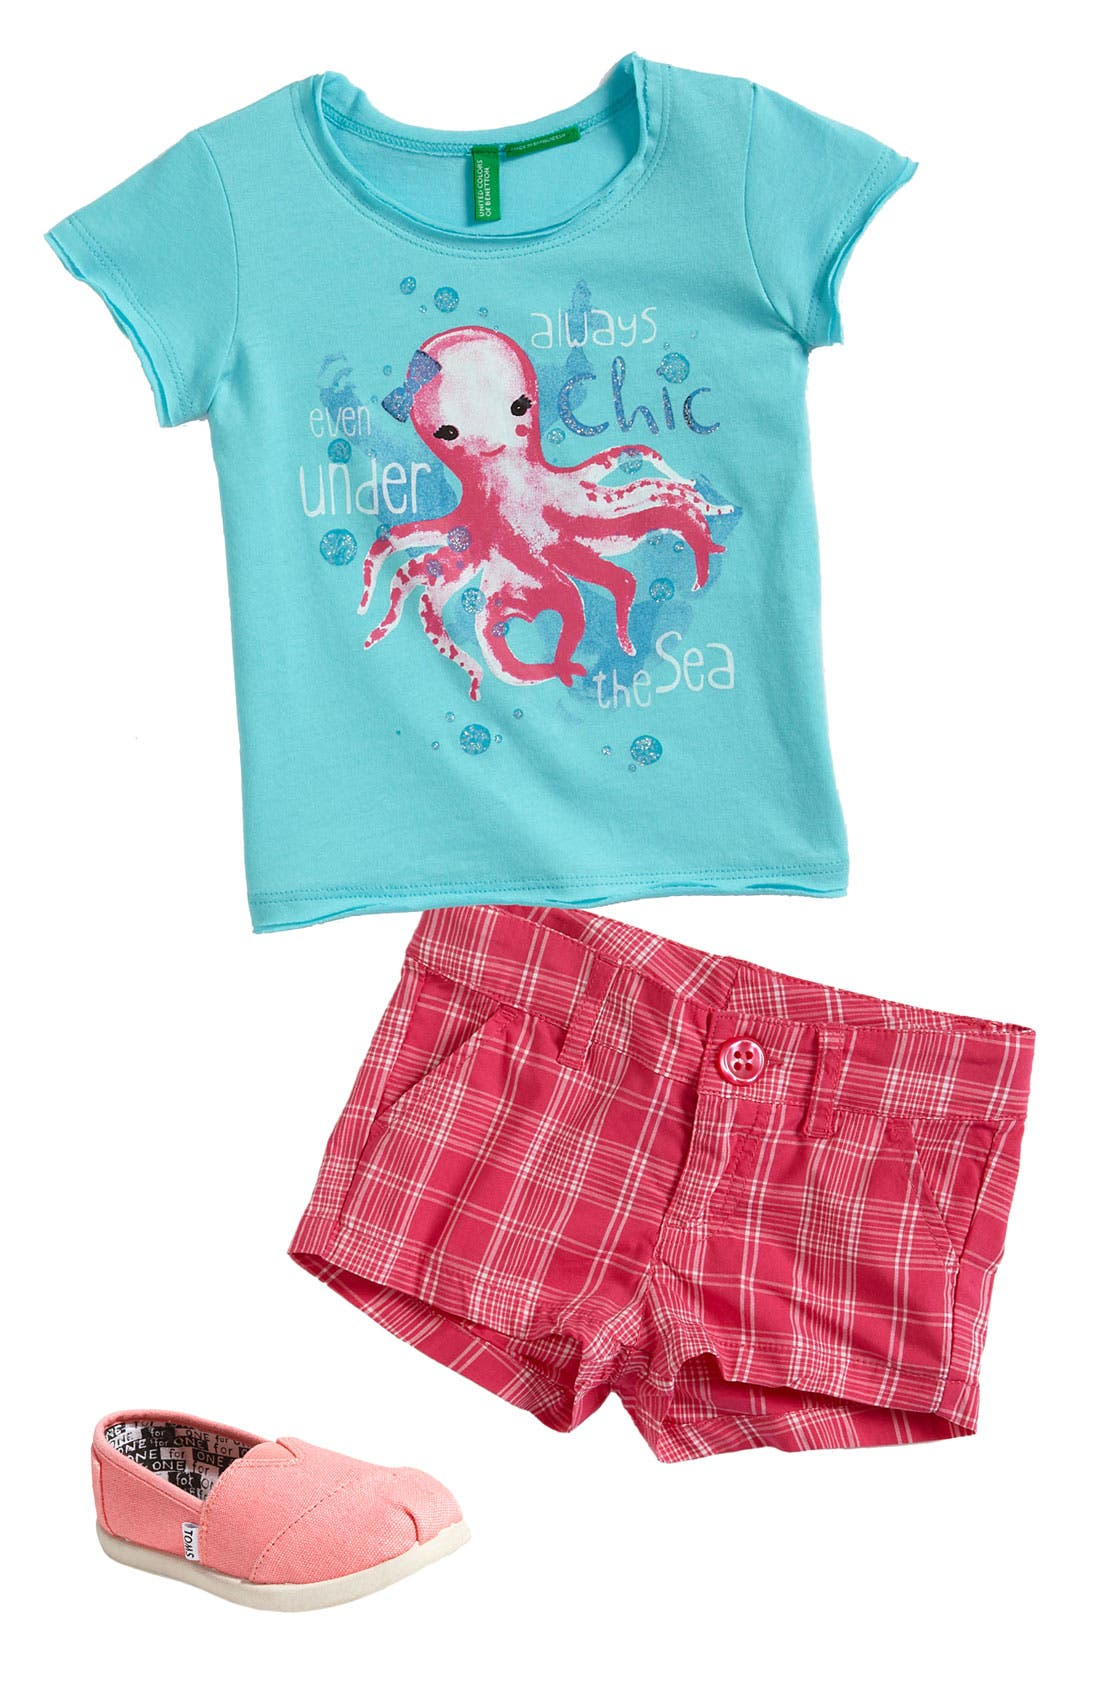 Alternate Image 1 Selected - United Colors of Benetton Kids Tee & Shorts (Toddler)